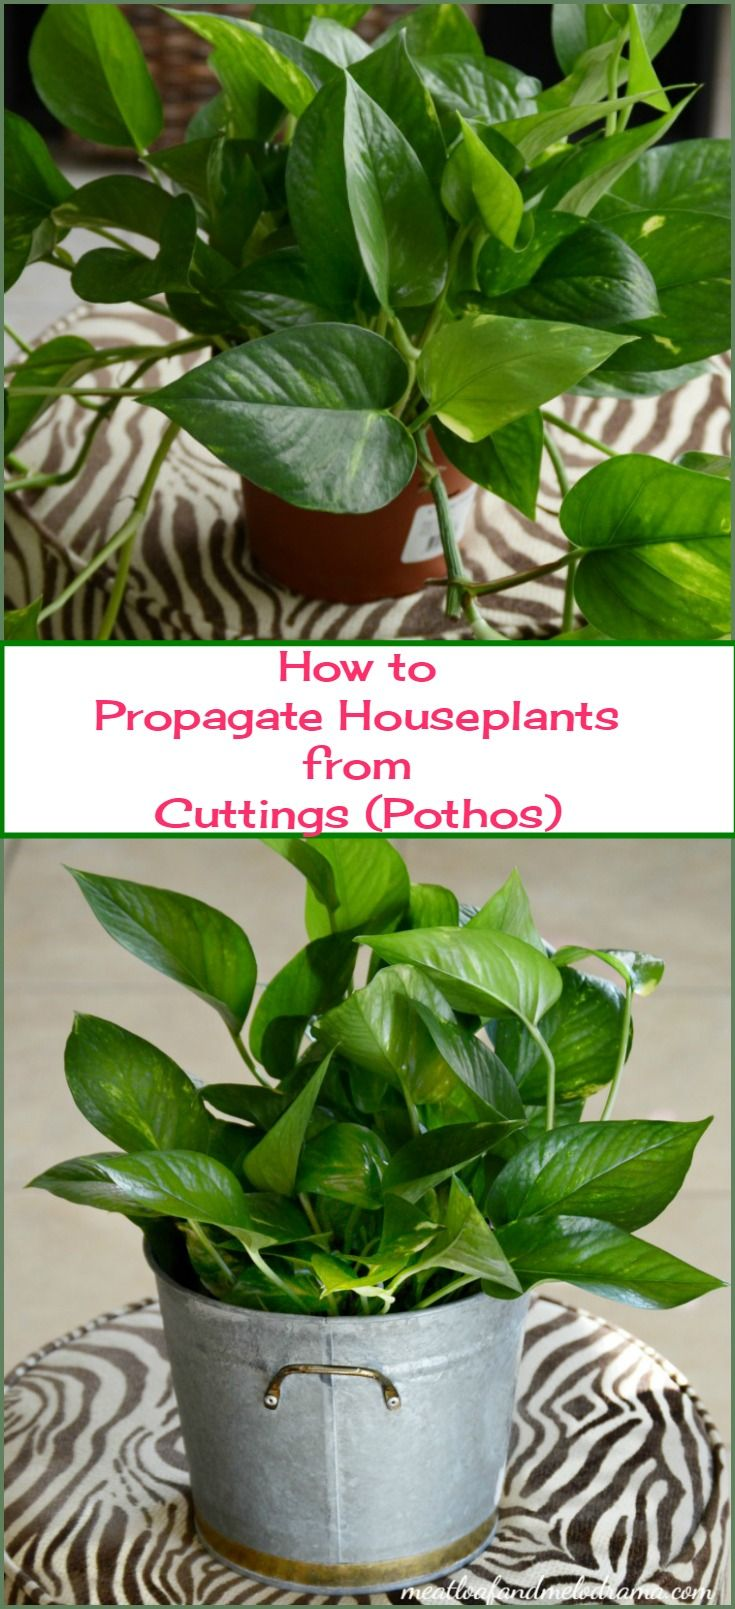 You can easily propagate houseplants from cuttings and grow your own plants instead of buying more. Pothos are super easy to grow in water!